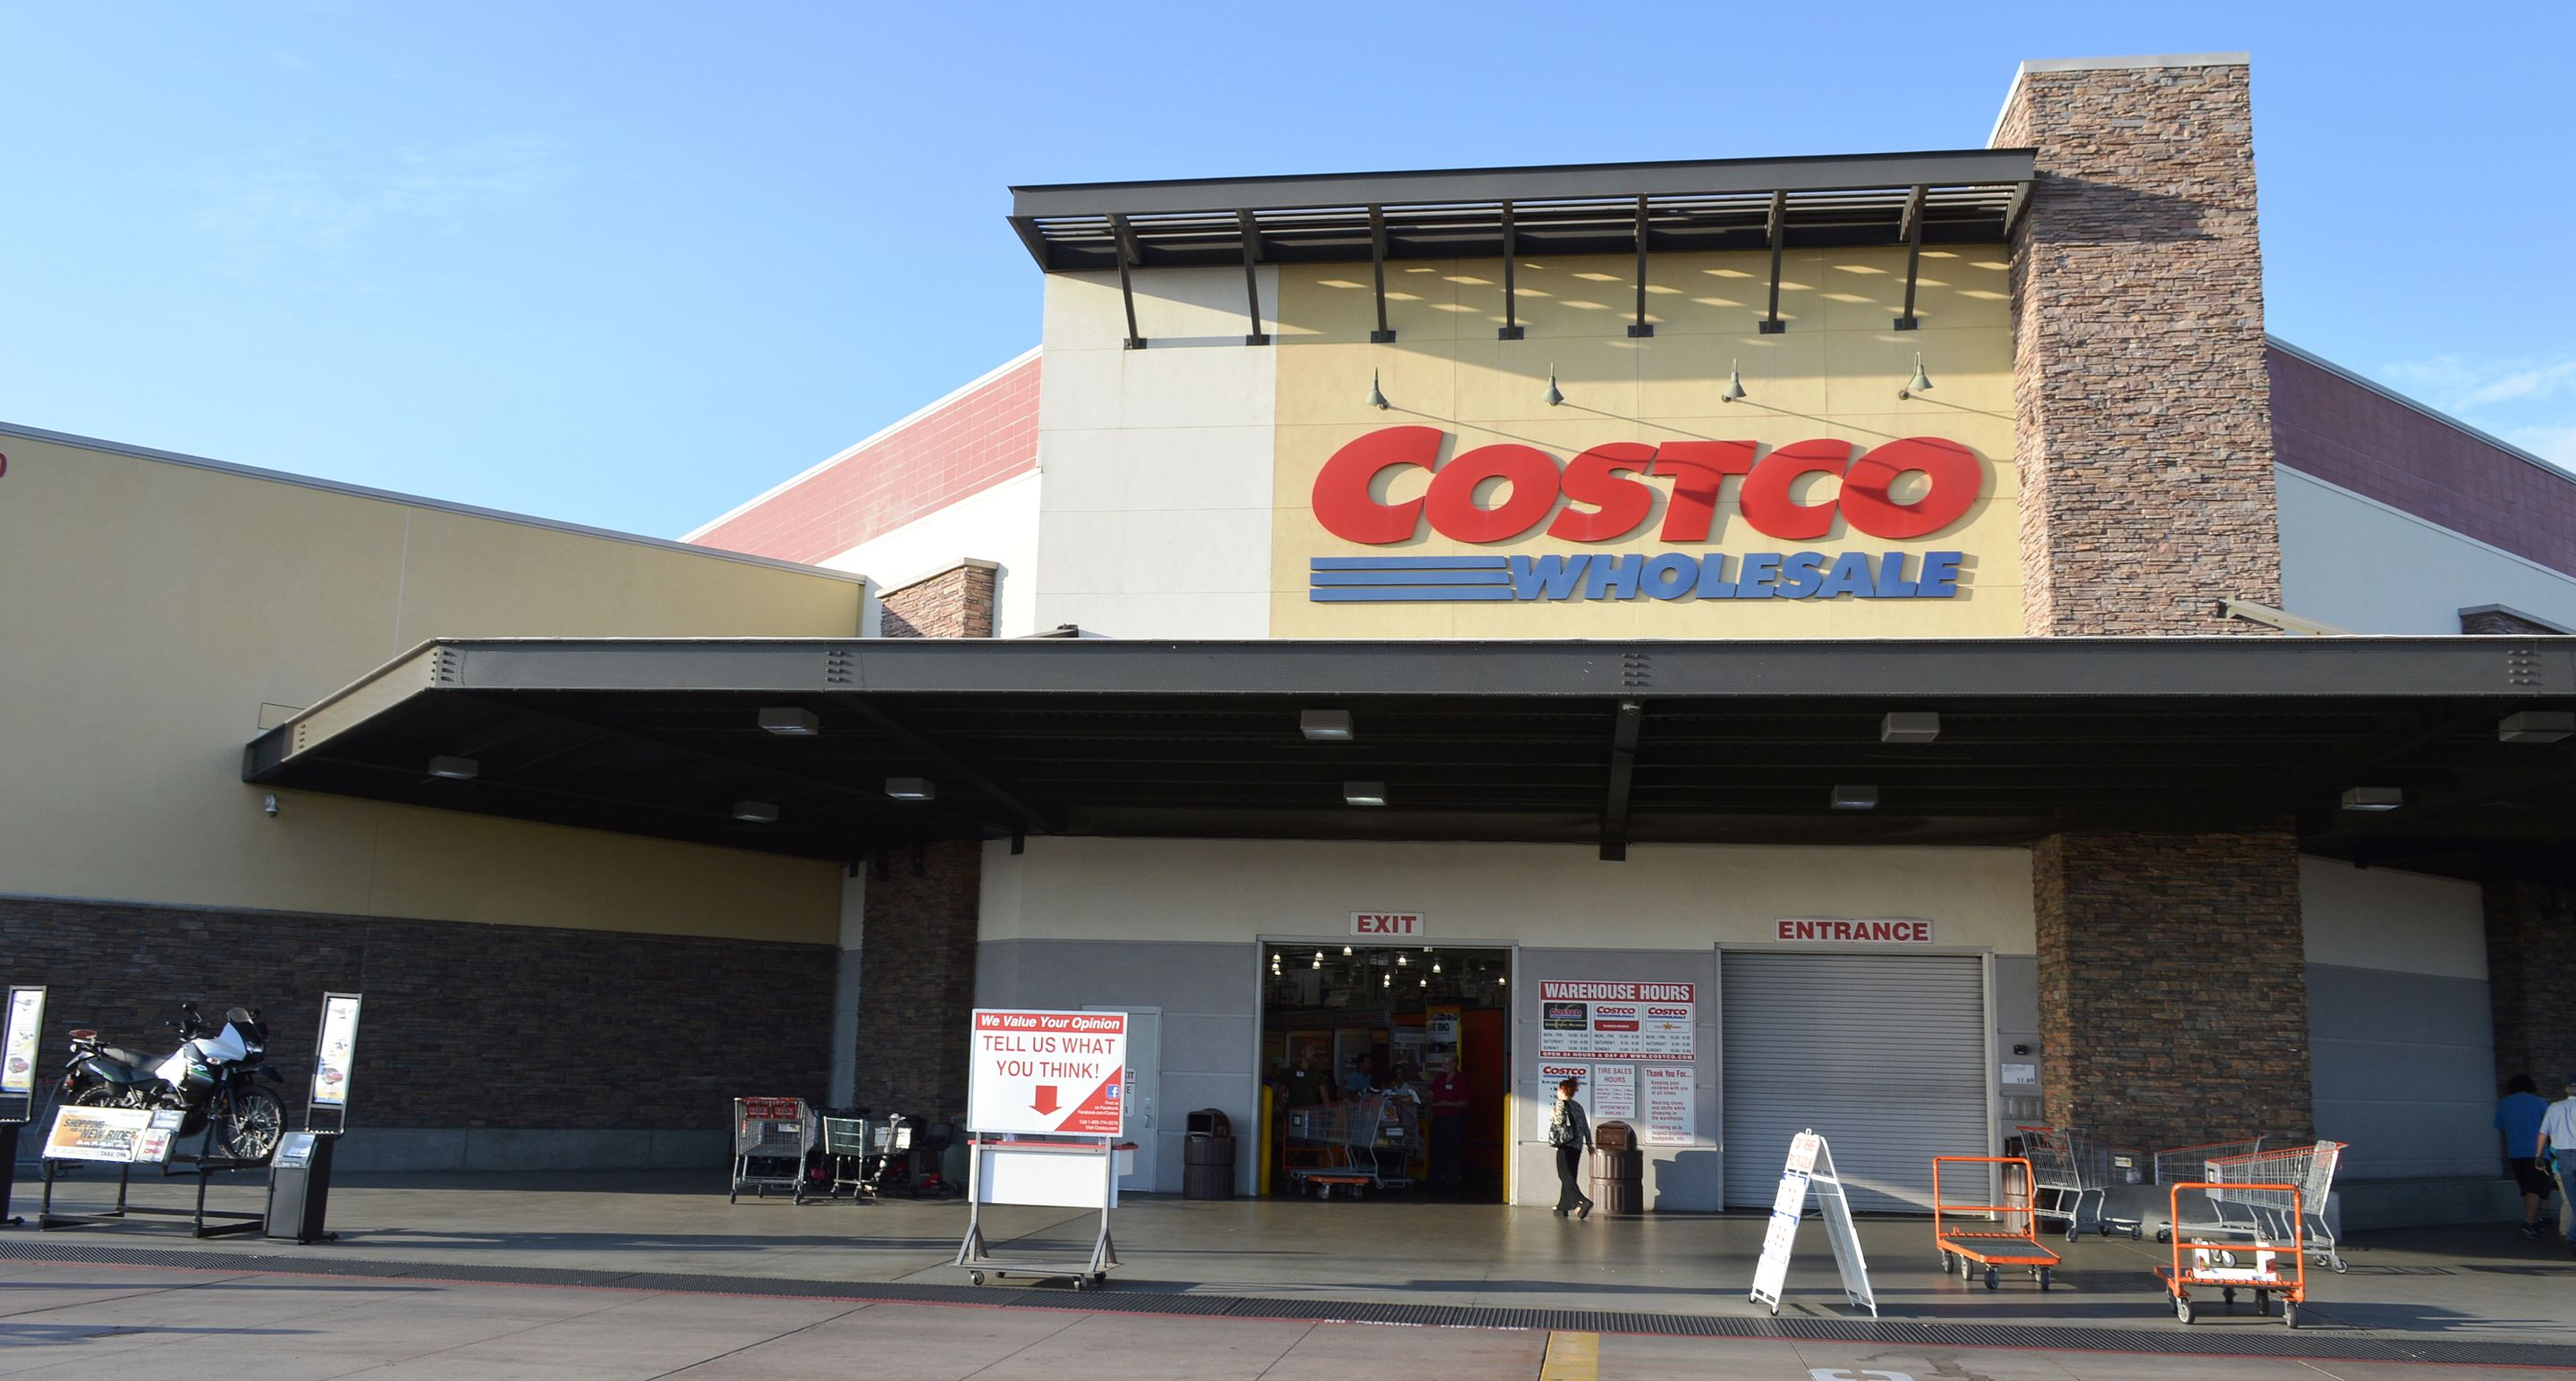 Costco Shares Fall, But Was It All Bad News For This Cash-Strapped Consumer Play?